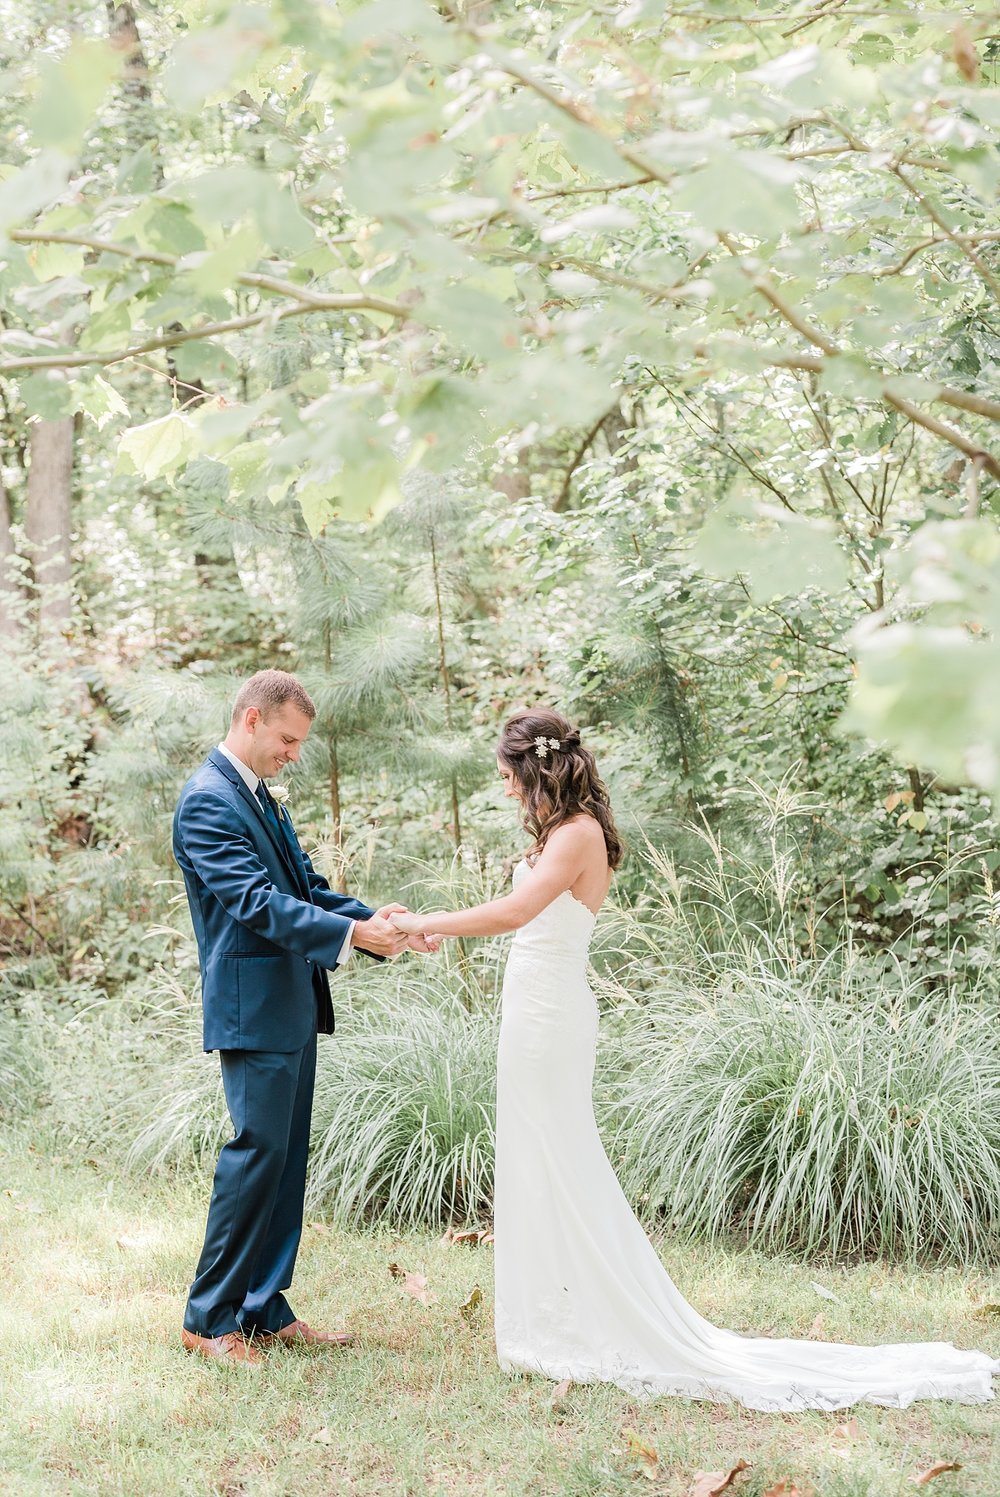 Romantic Summer Sunset Wedding Ceremony at Little Piney Lodge St. Louis Missouri by Kelsi Kliethermes Photography Fine Art Photographer_0044.jpg